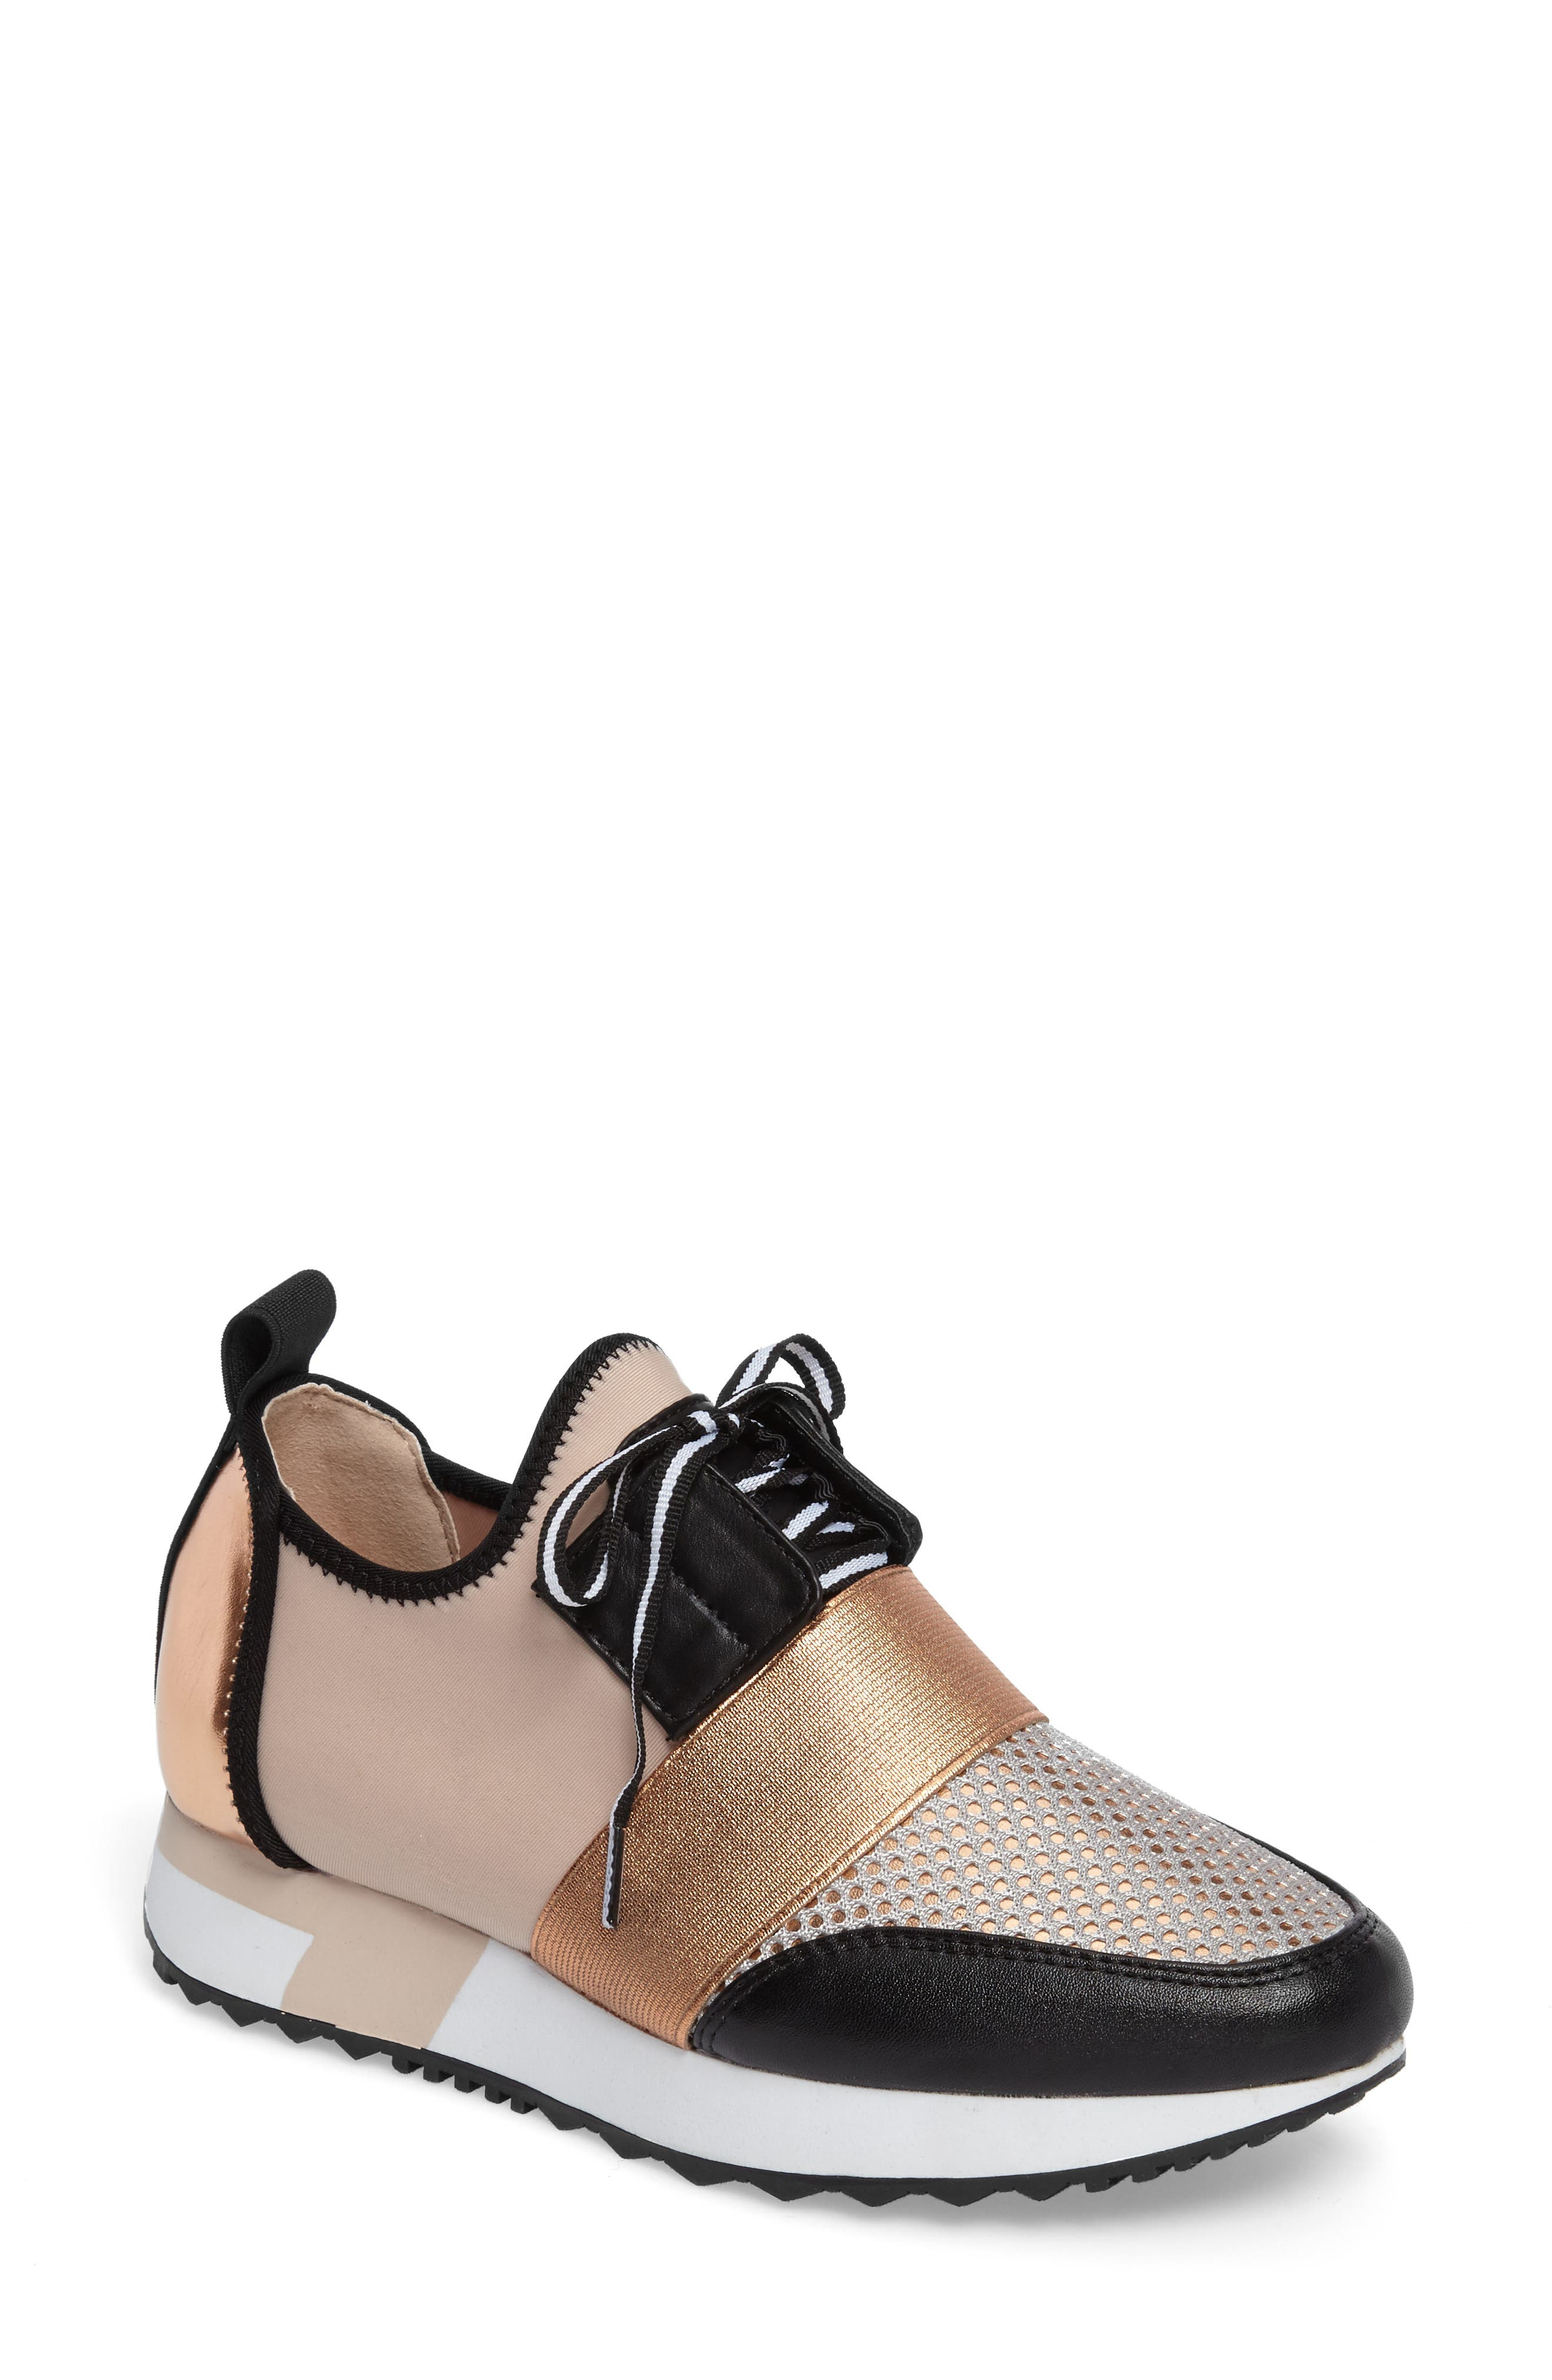 Antics Sneaker,                         Main,                         color, Rose Gold Faux Leather